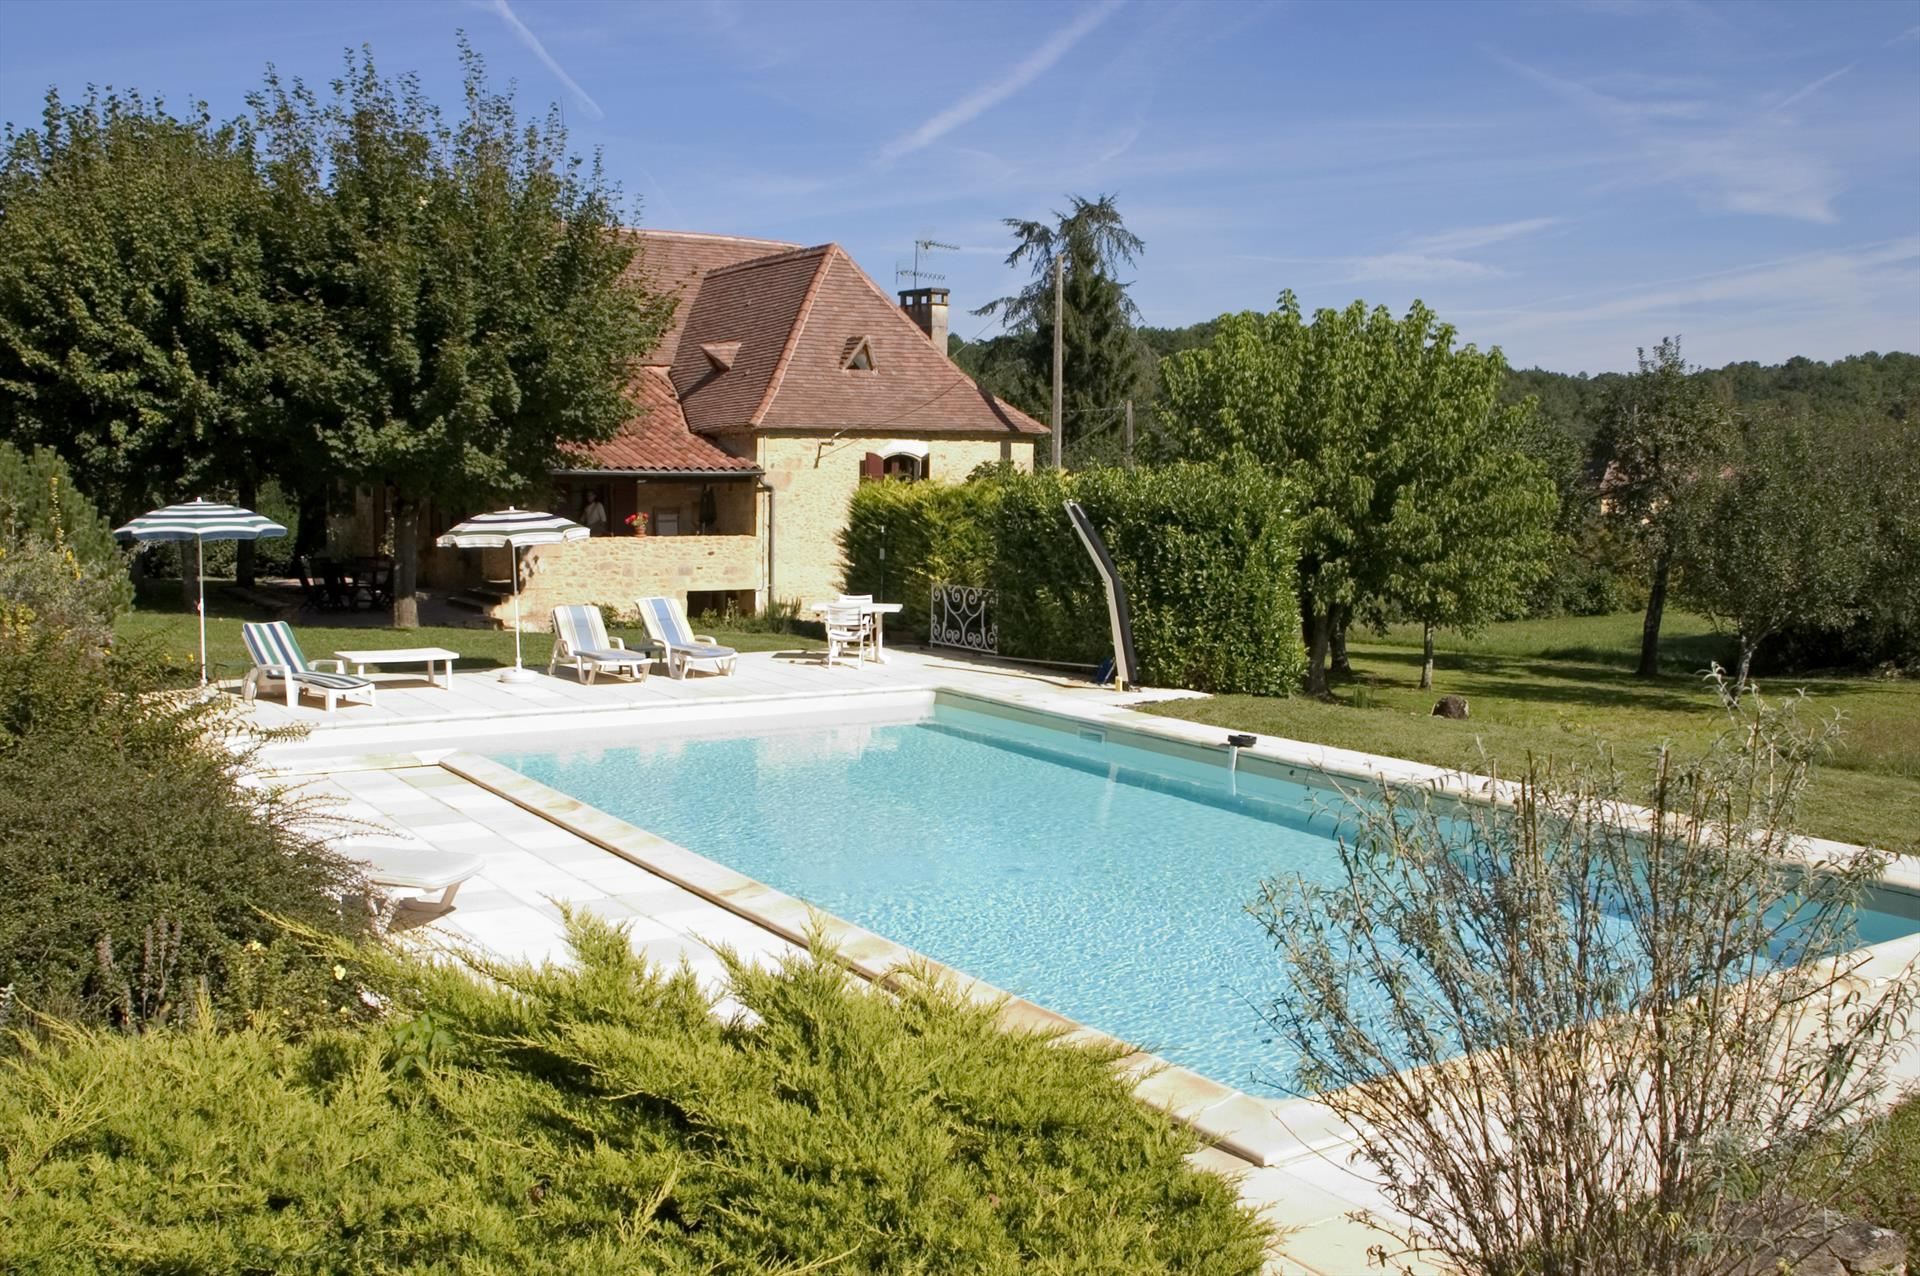 Senieur,Beautiful and cheerful villa  with private pool in St Avit Senieur, Dordogne, France for 7 persons...